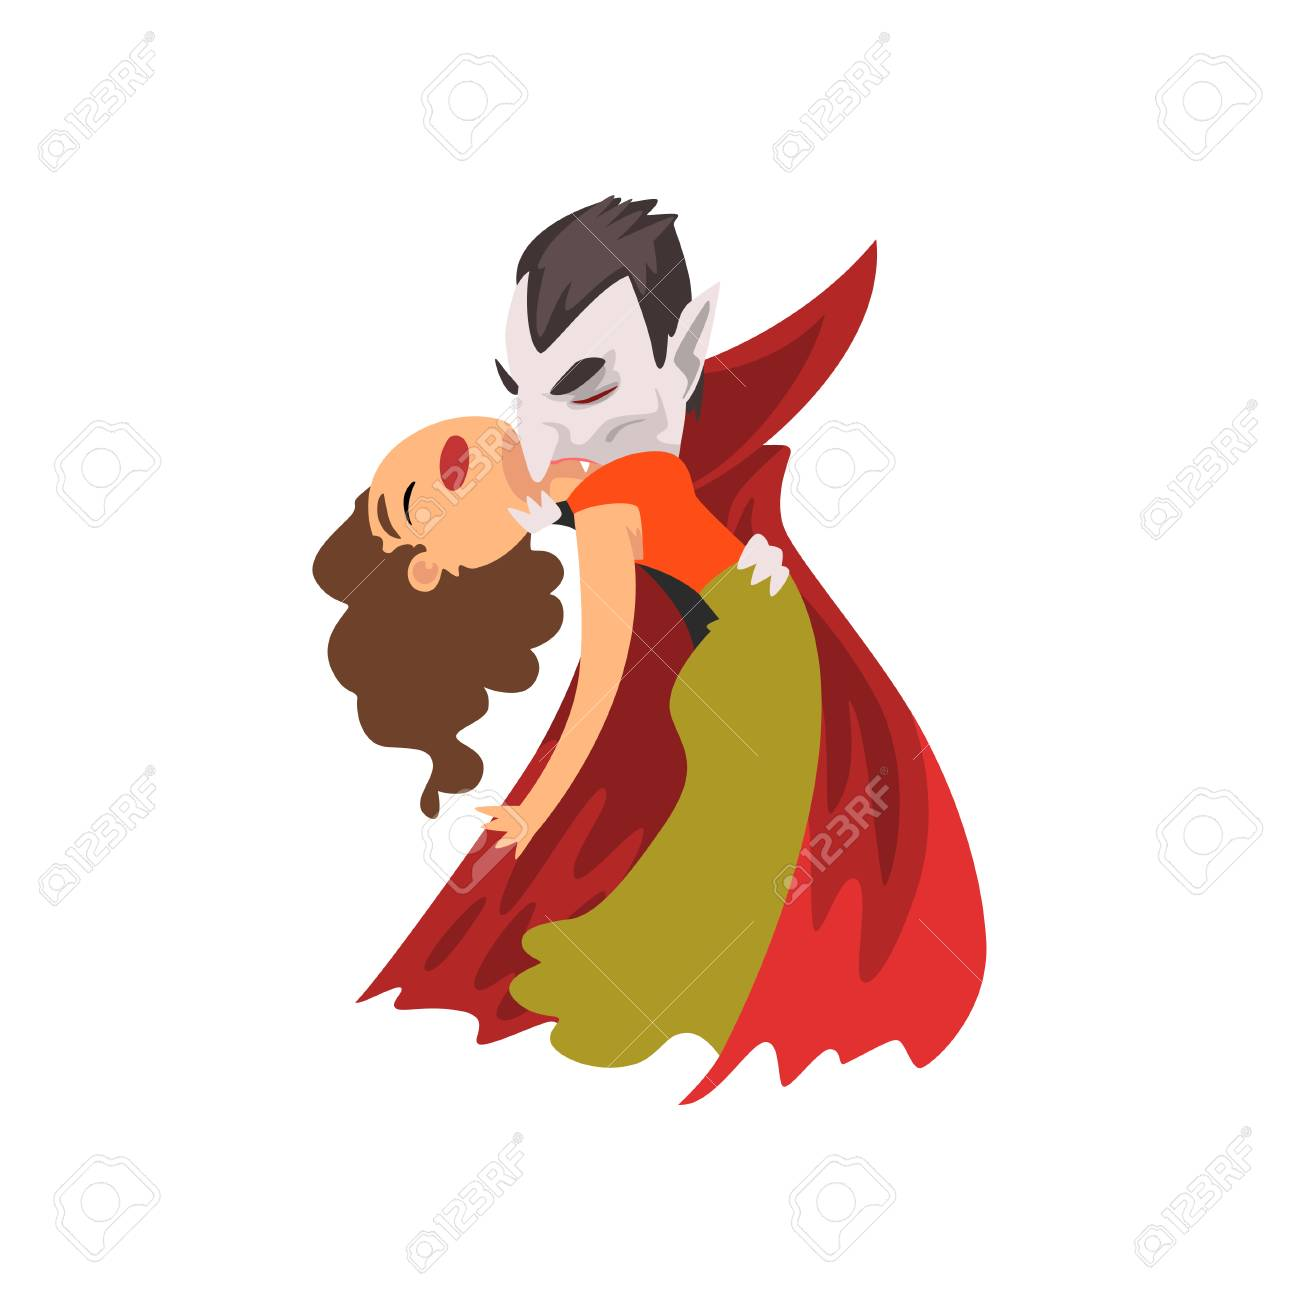 Count Dracula biting a beautiful woman, vampire cartoon character vector Illustration isolated on a white background. - 111413716